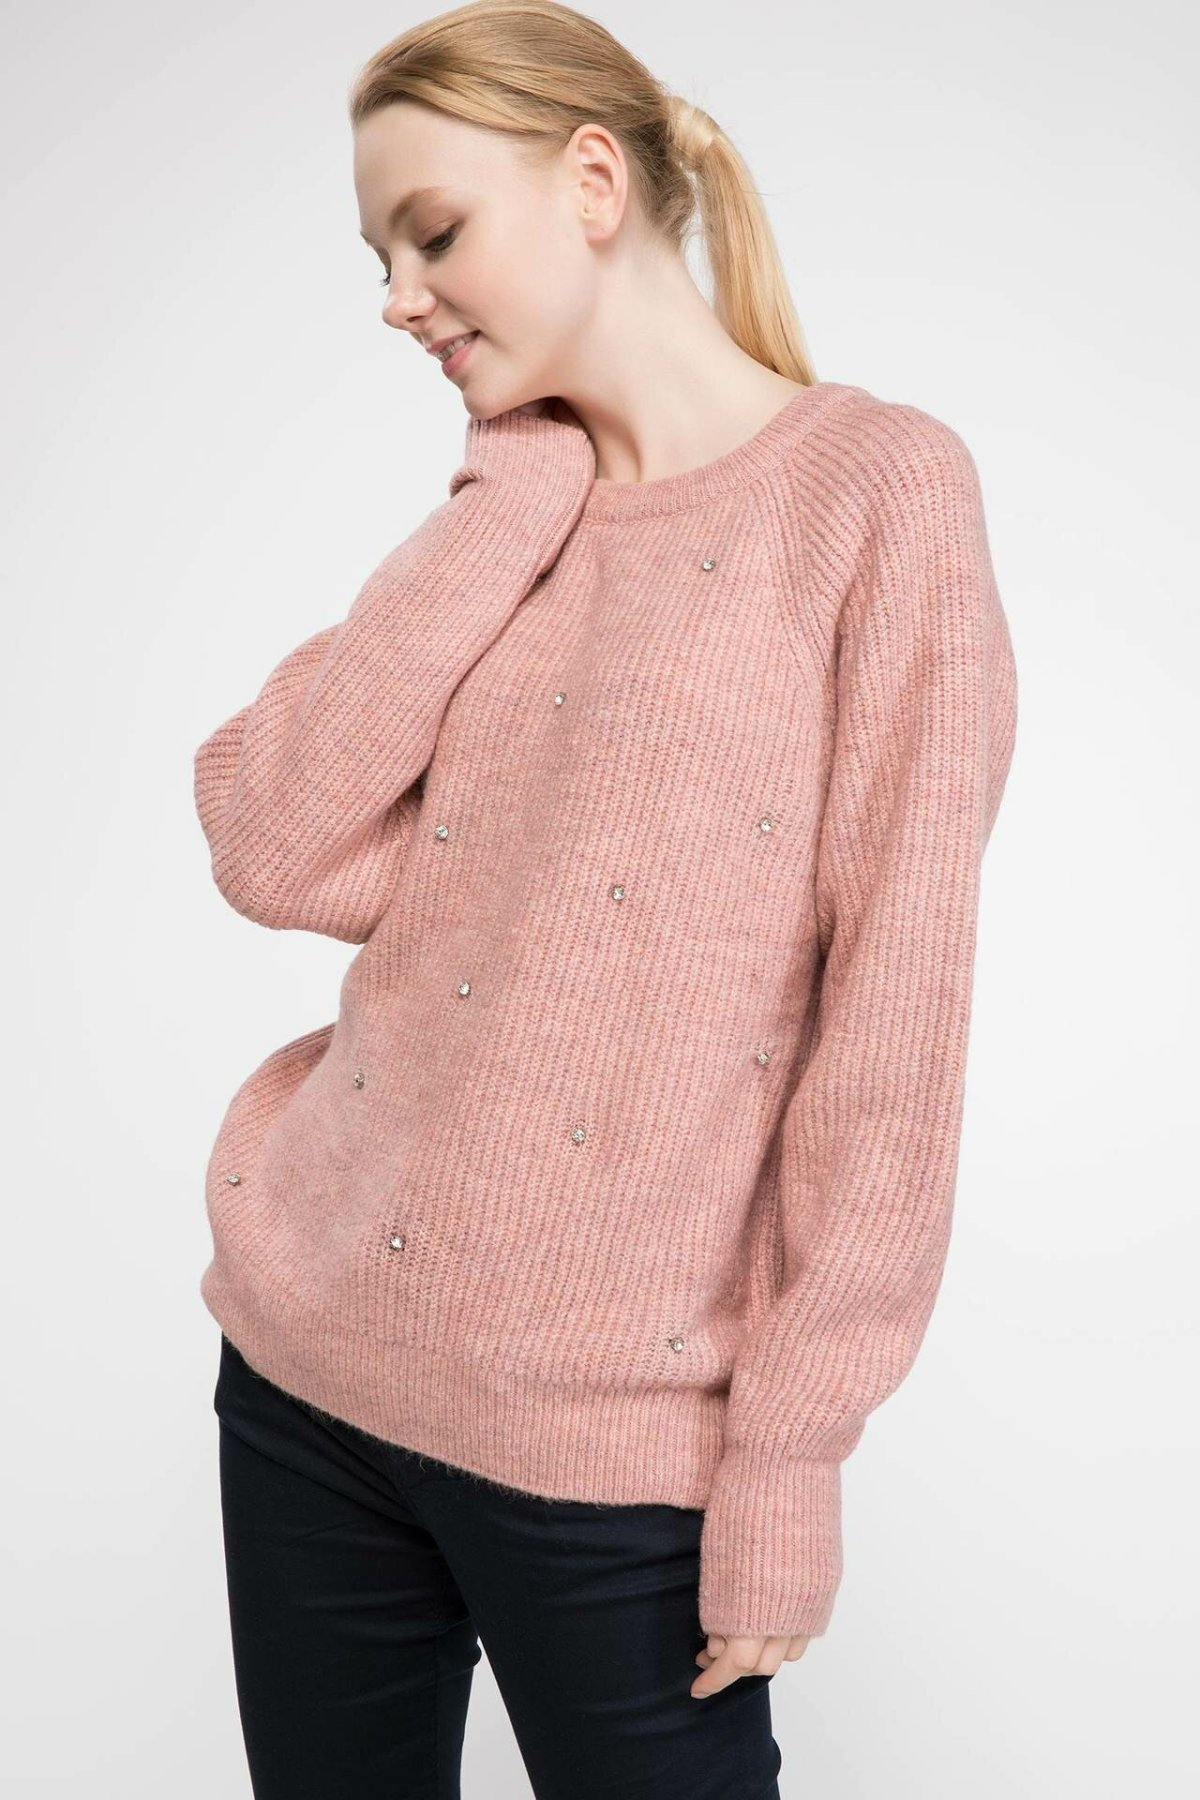 DeFacto Women Casual Joker Knitted Pullovers Fashion O-neck Solid Knitted Simple Sweatshirts Female New-J2978AZ18WN